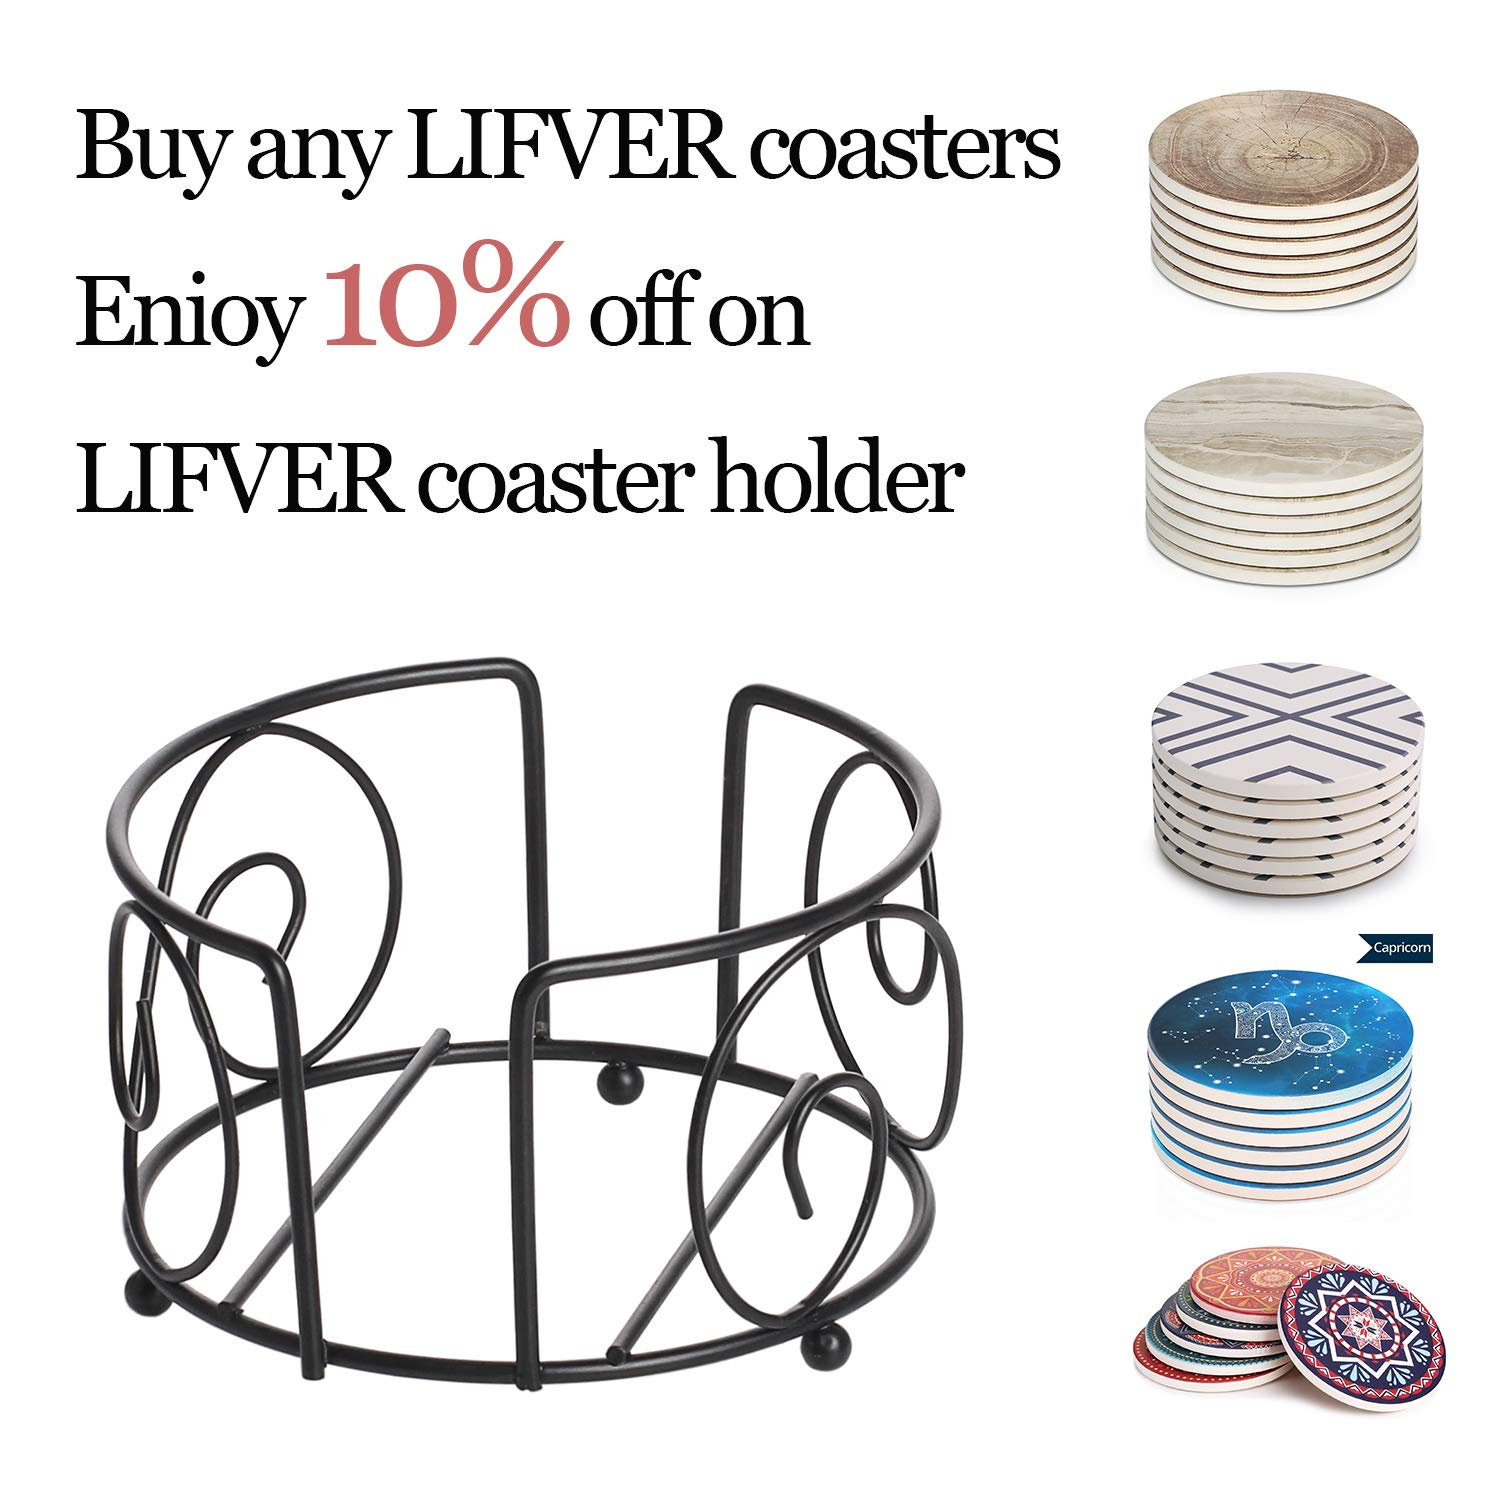 Hold Up To 8 Pcs coasters LIFVER 4.5 Inch Black Iron Metal Coaster Holder